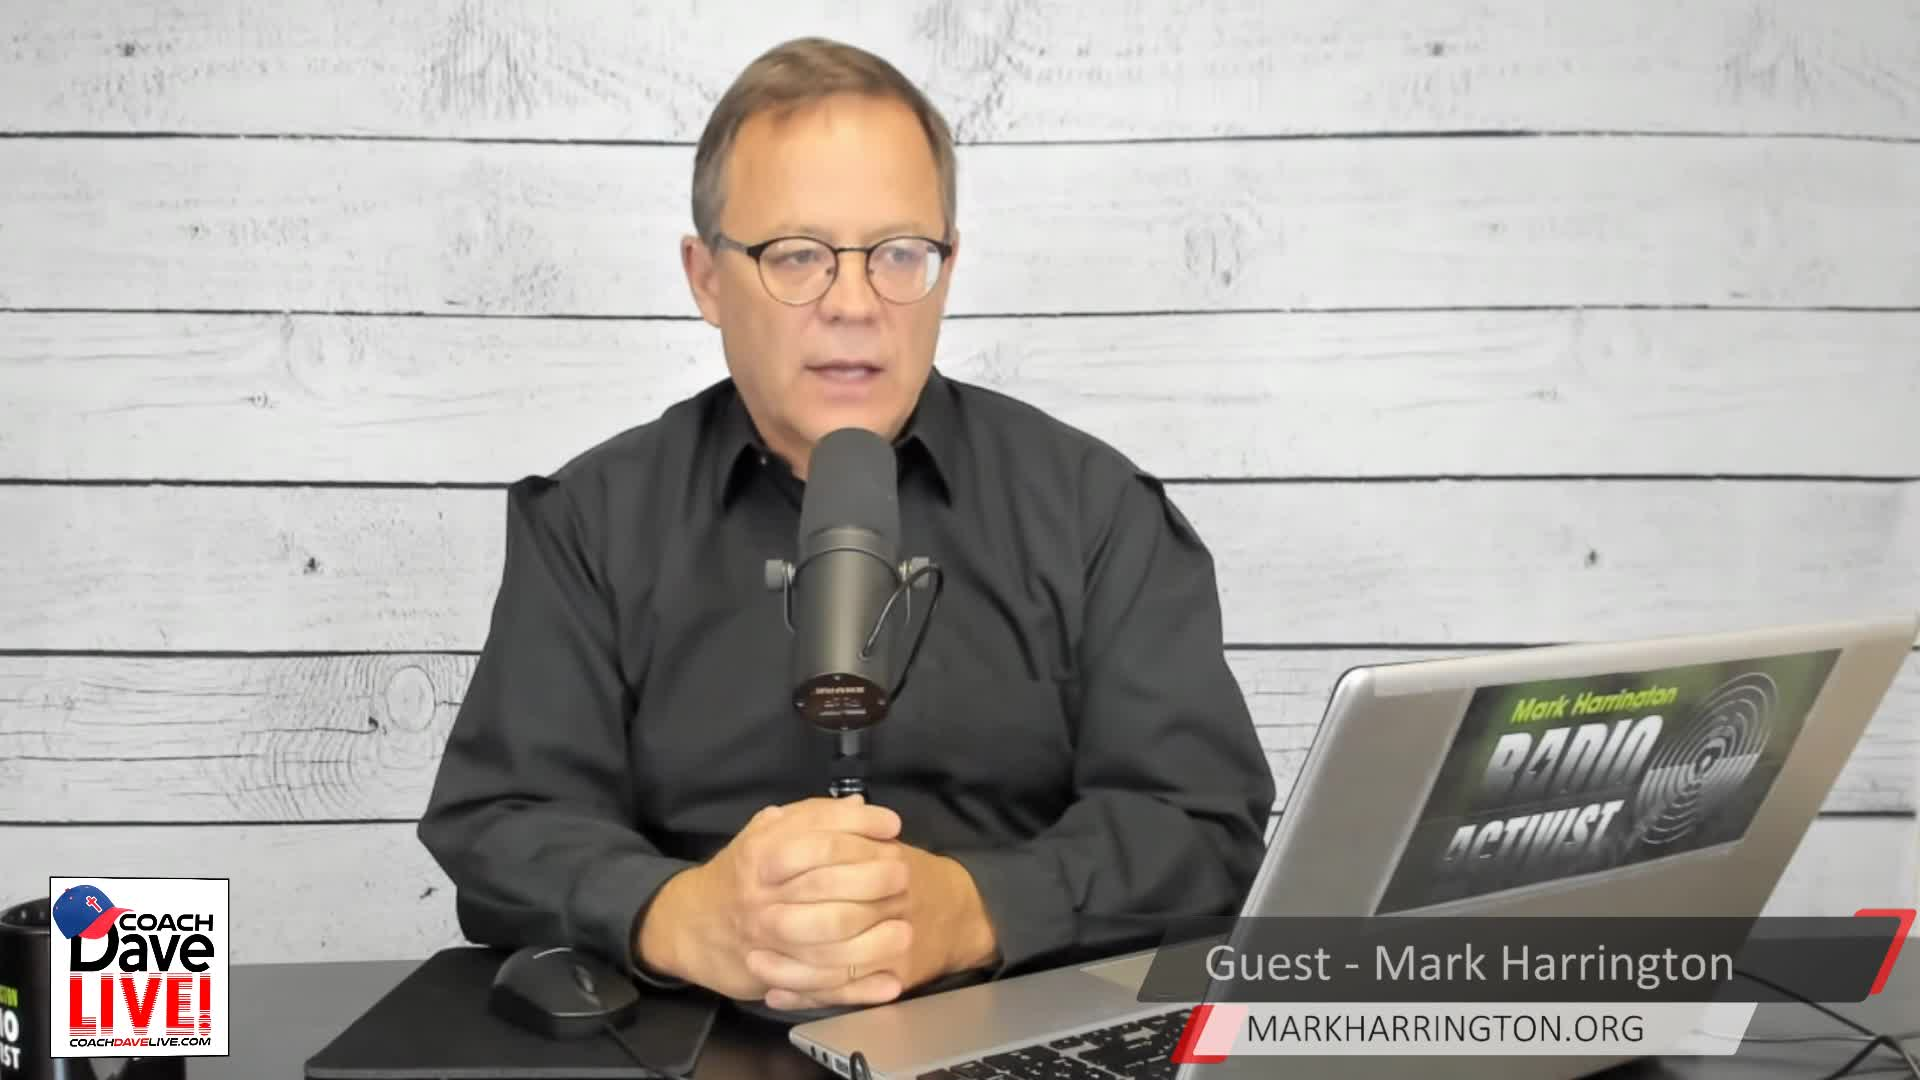 Coach Dave LIVE   10-29-2020   CREATED EQUAL